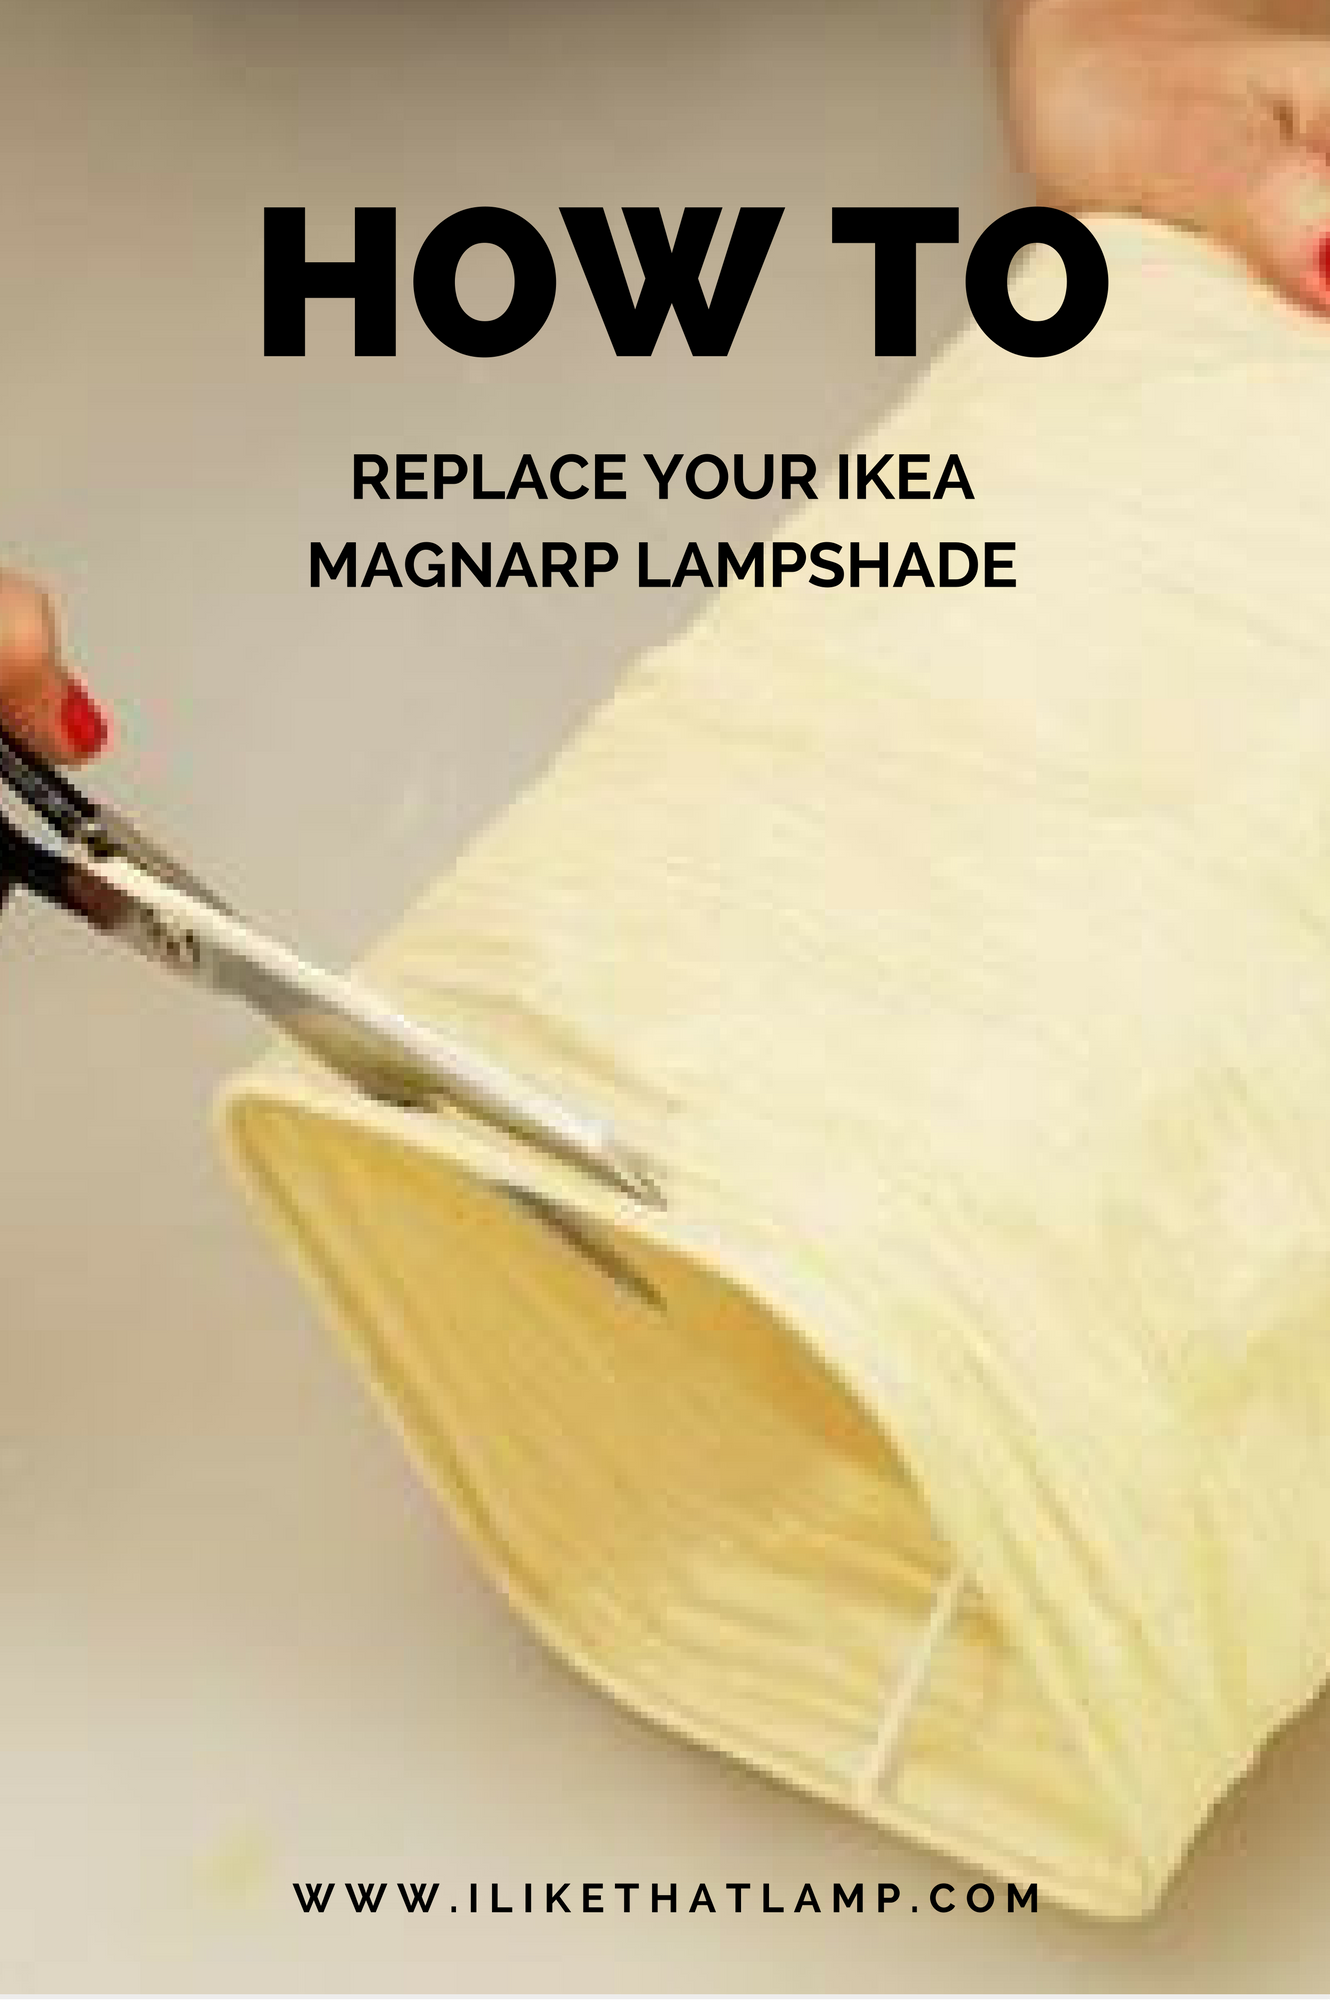 How to Replace Your Ikea Magnarp Lampshade Lamp shades